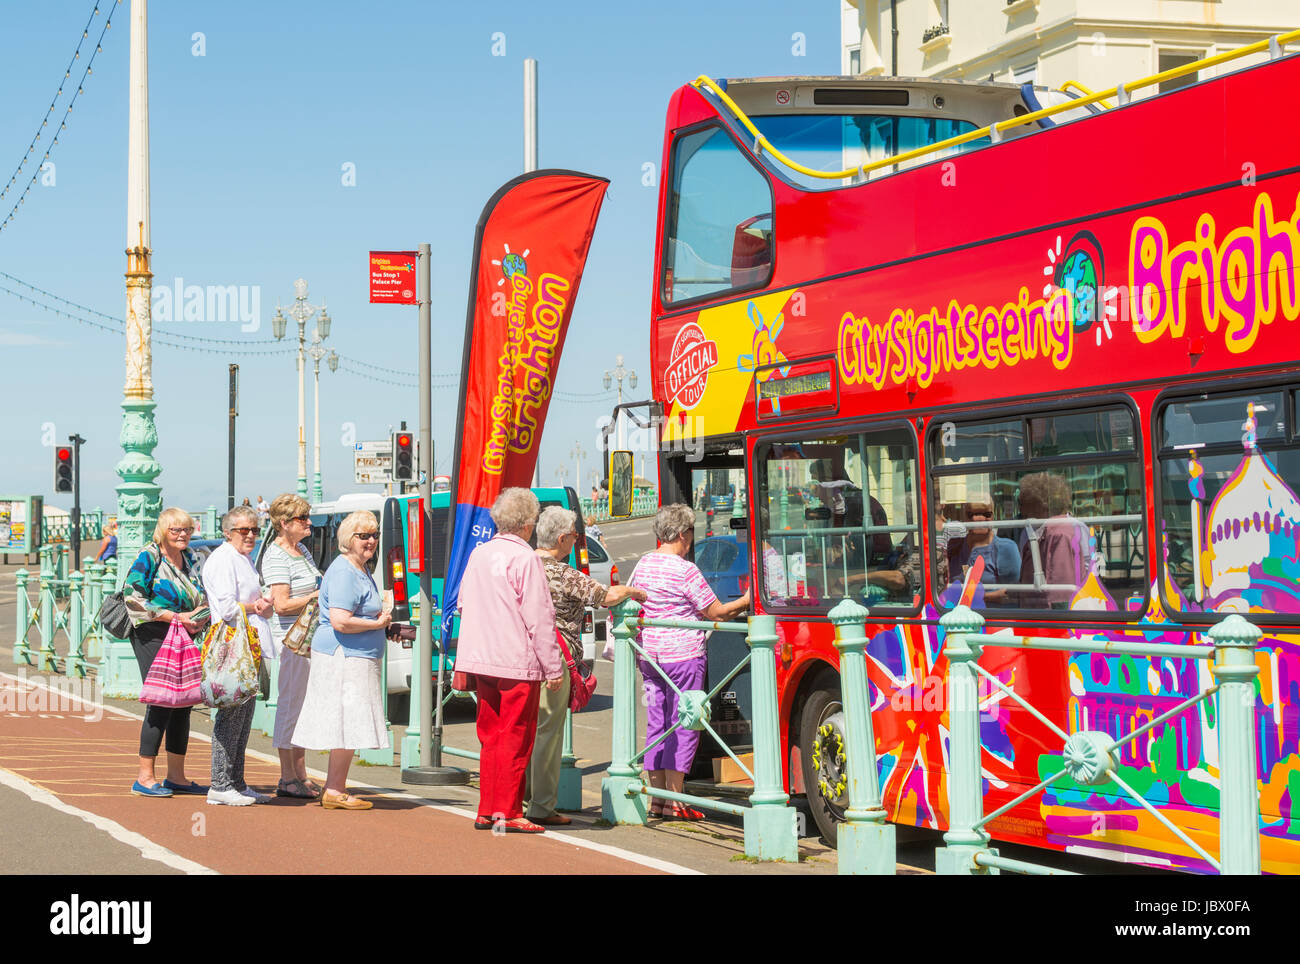 Sightseeing bus. Elderly tourists boarding the open top sightseeing bus on the seafront road in Brighton. East Sussex, - Stock Image